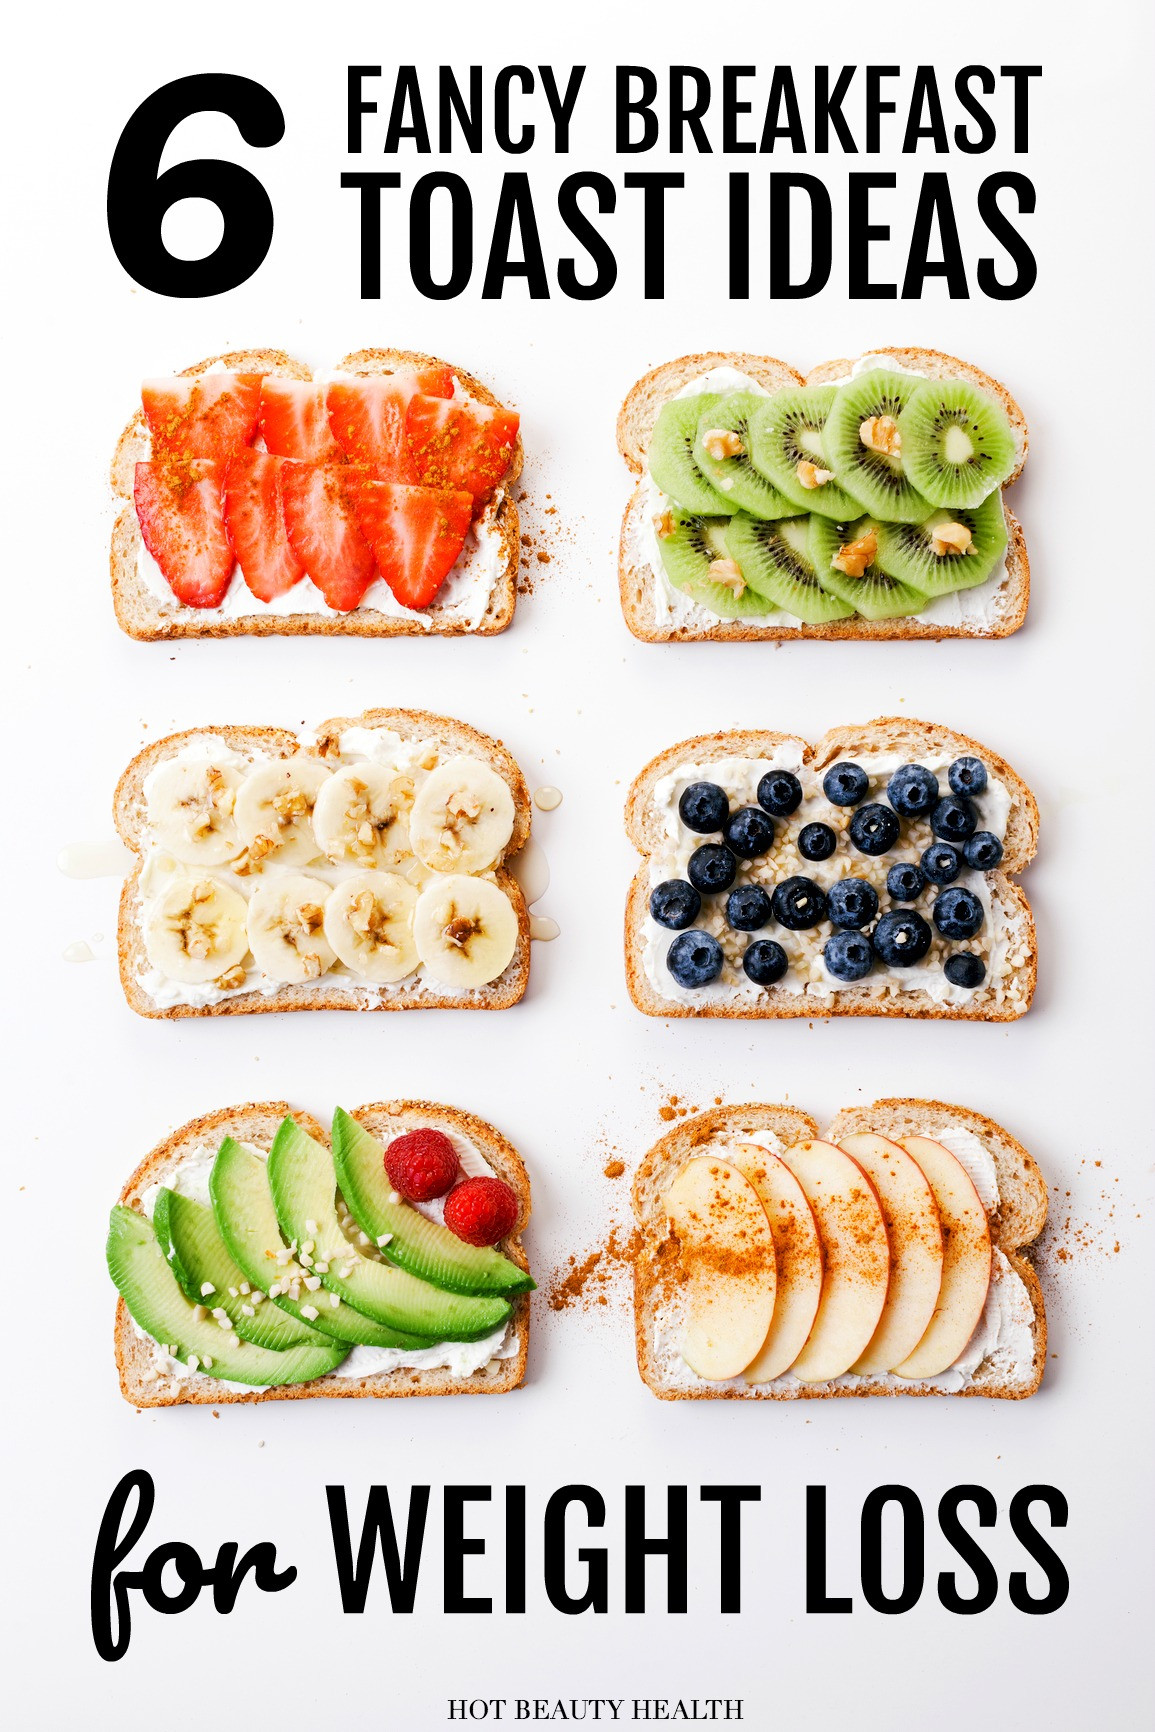 Healthy Breakfast Options For Weight Loss  6 Easy & Creative Ways to Fancy Up Breakfast Toasts Hot